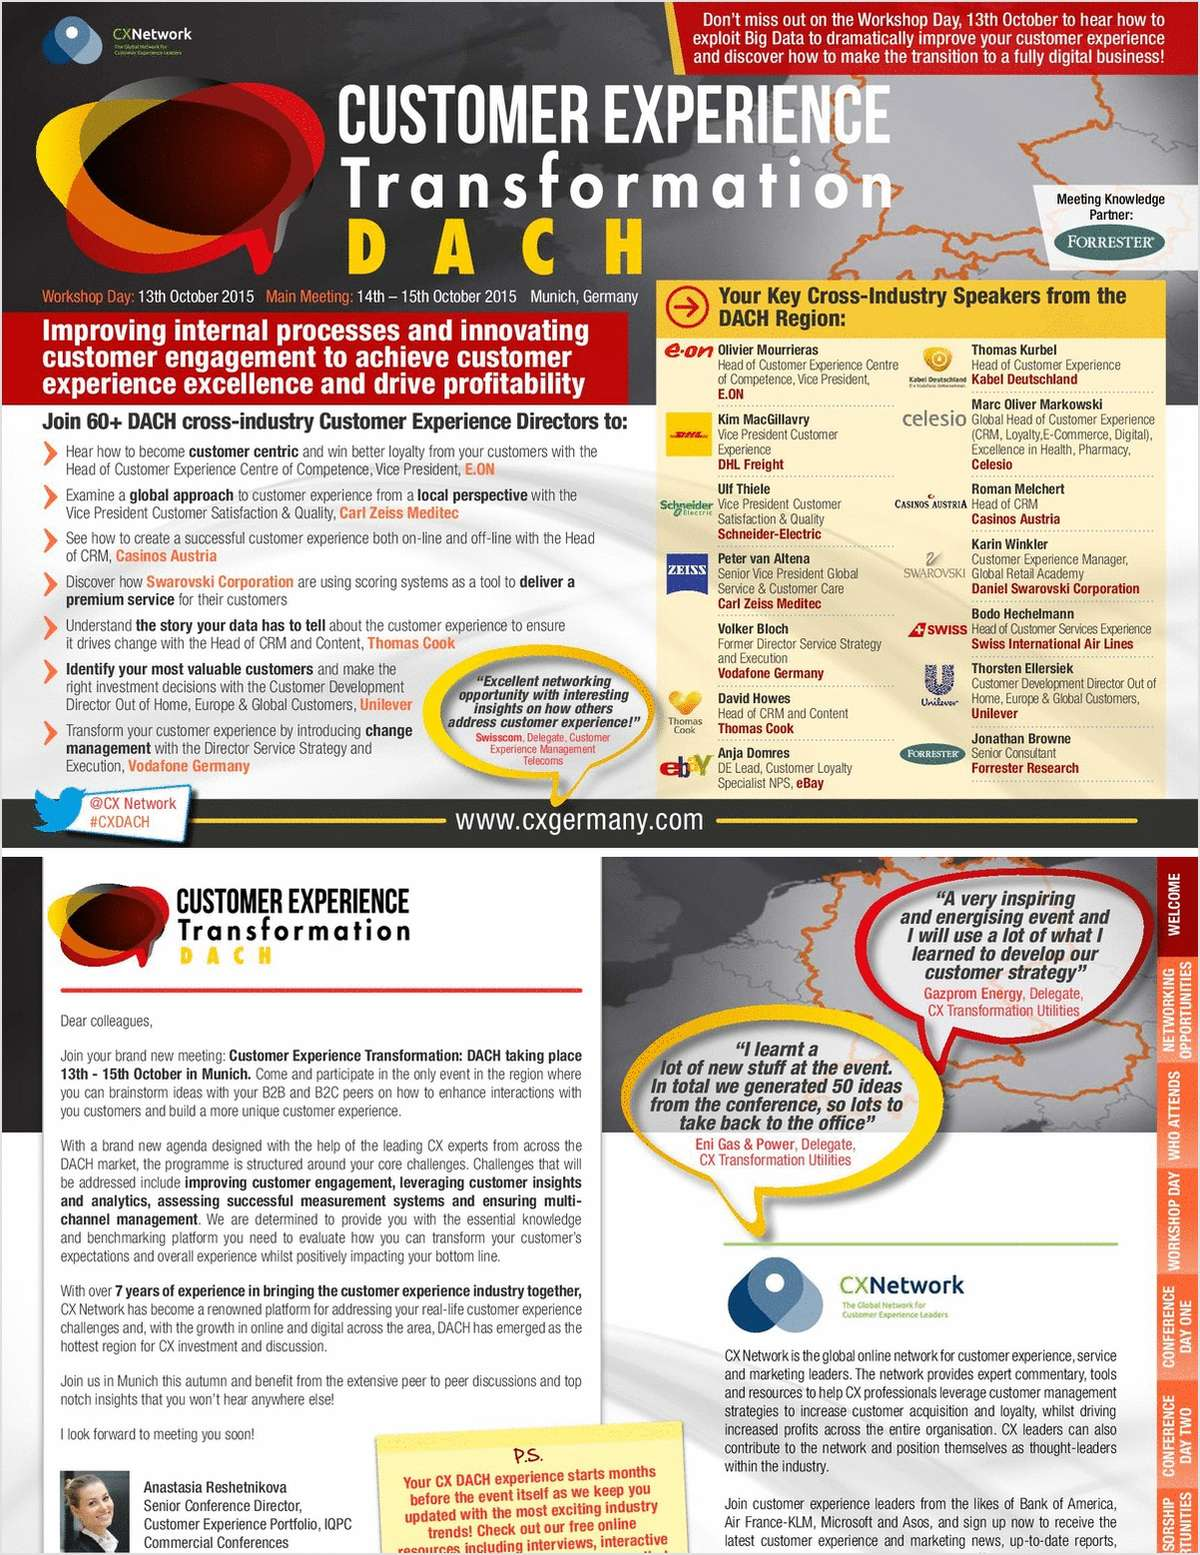 Customer Experience Transformation in the DACH Region